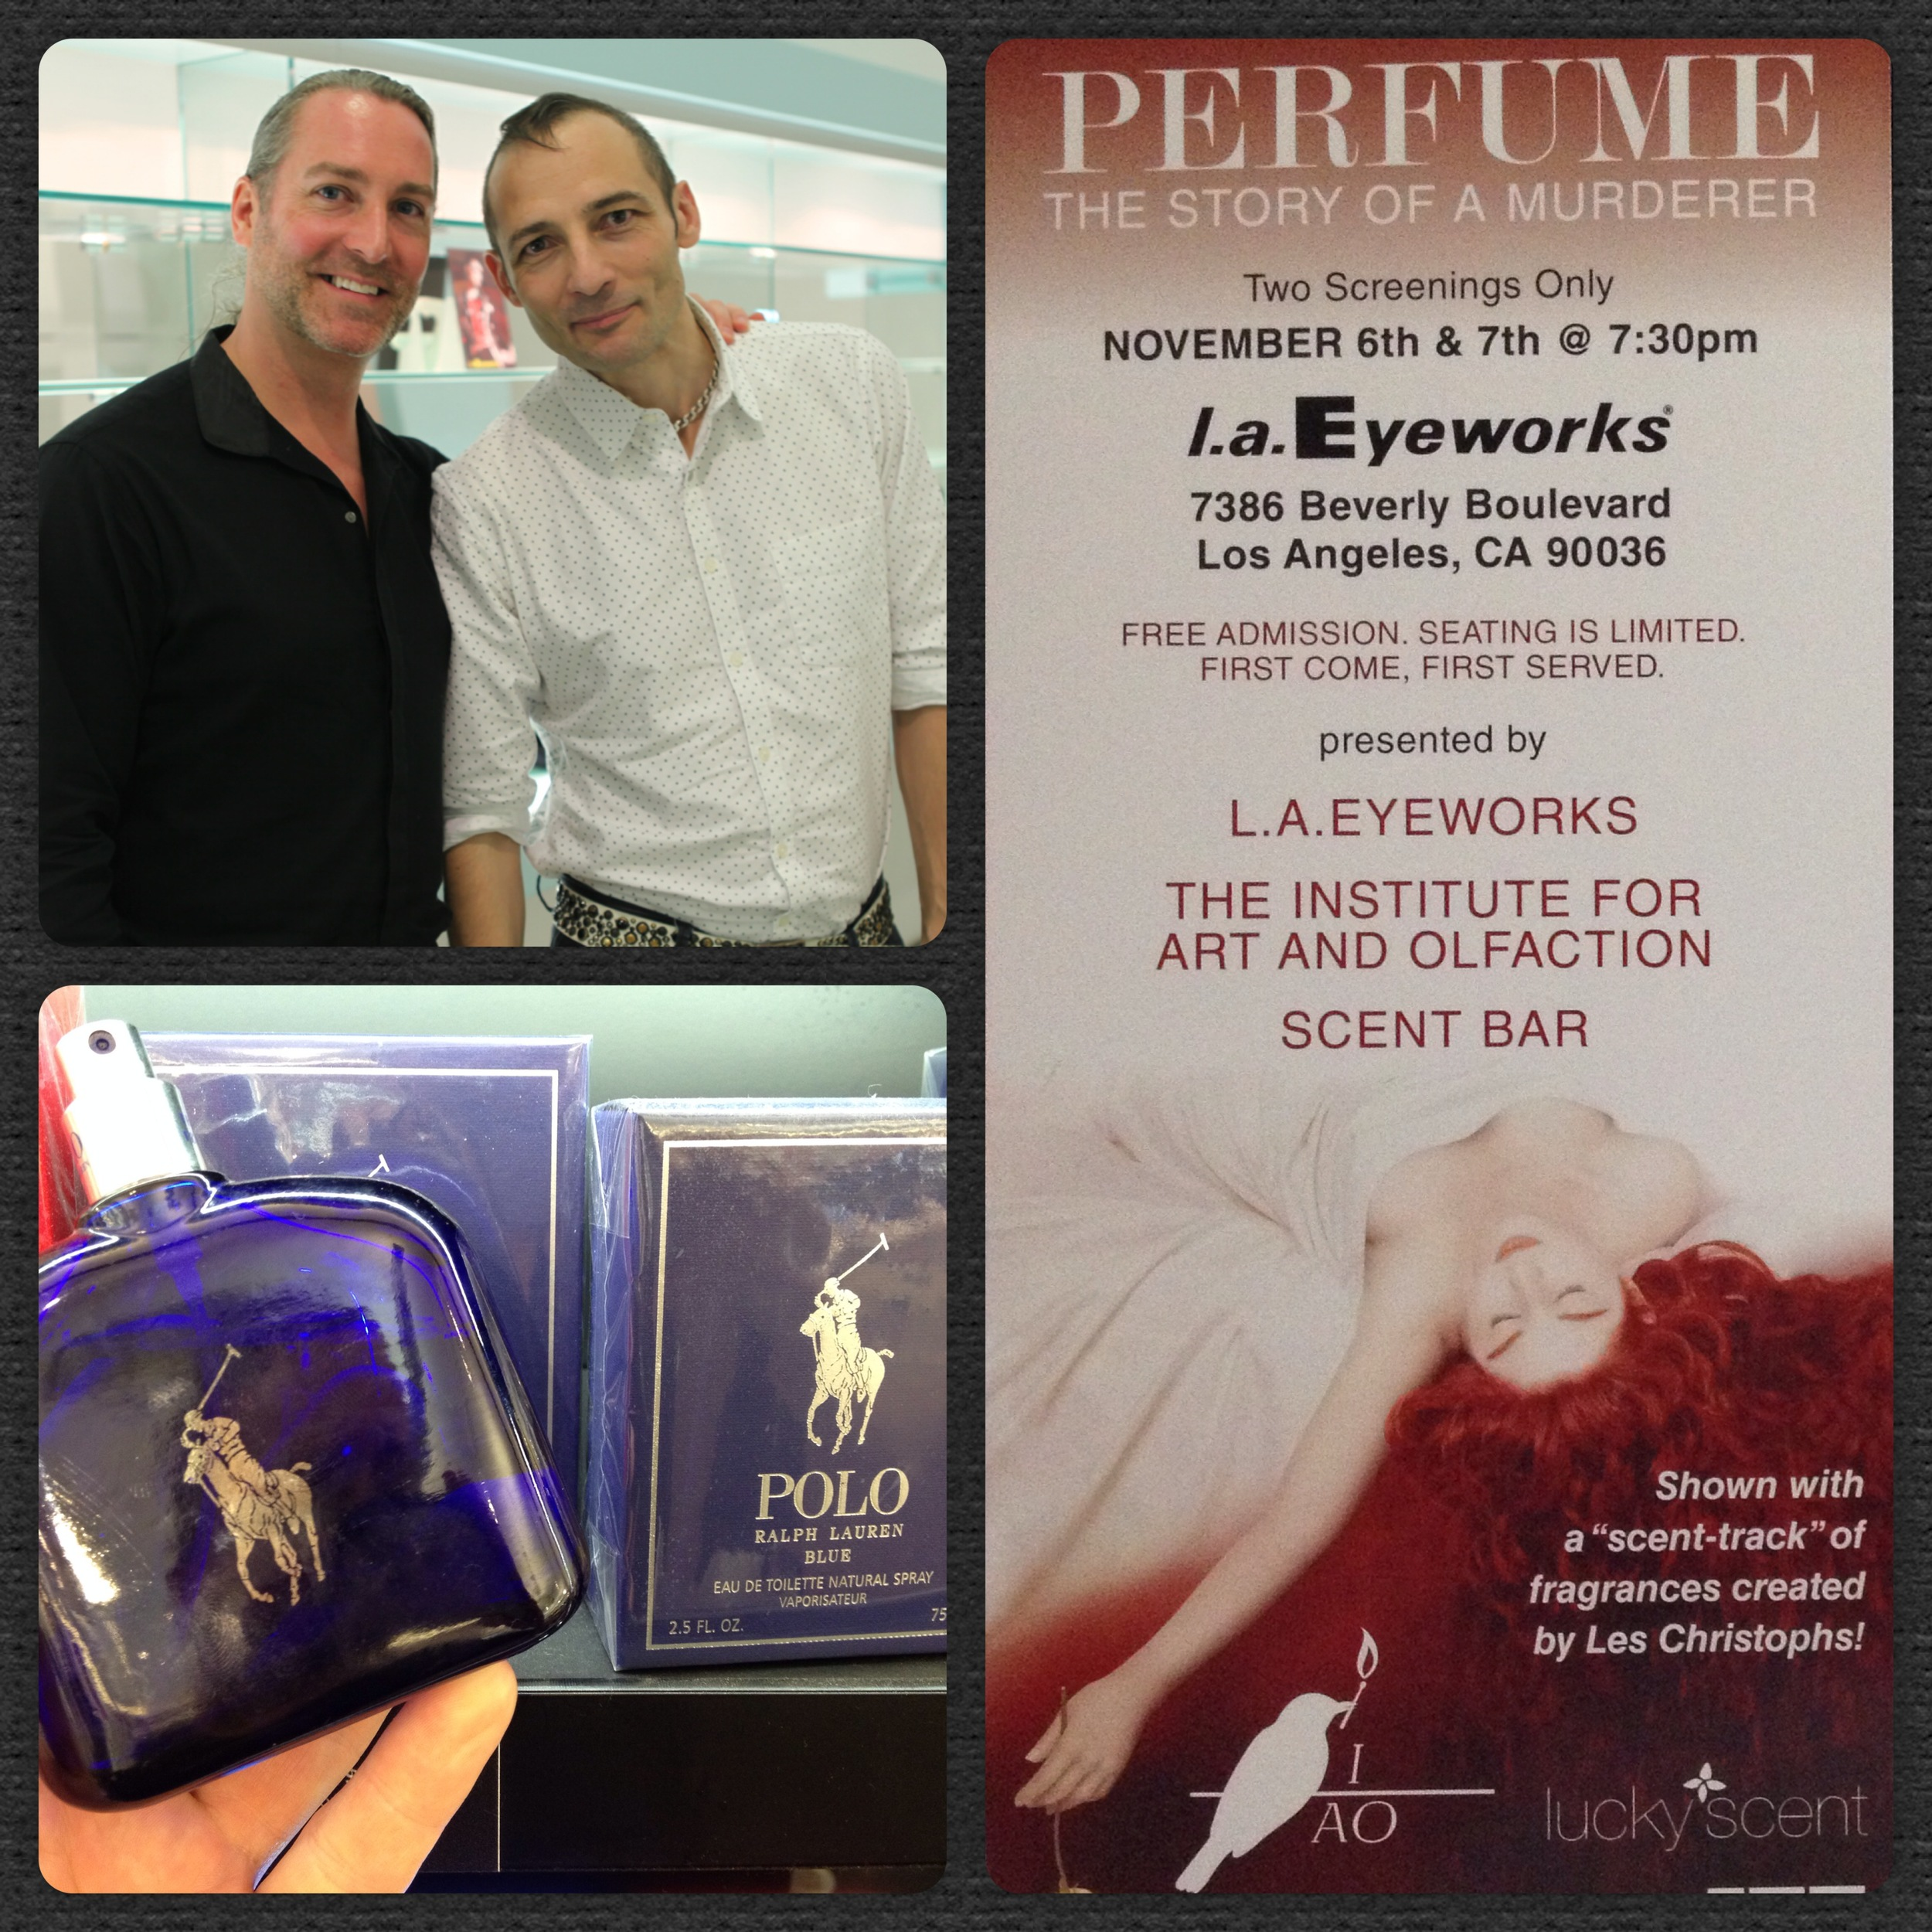 """Great time experiencing Christophe Laudamiel's inspiration and olfactory interpretations of """"Perfume-The Story of a Murder"""""""